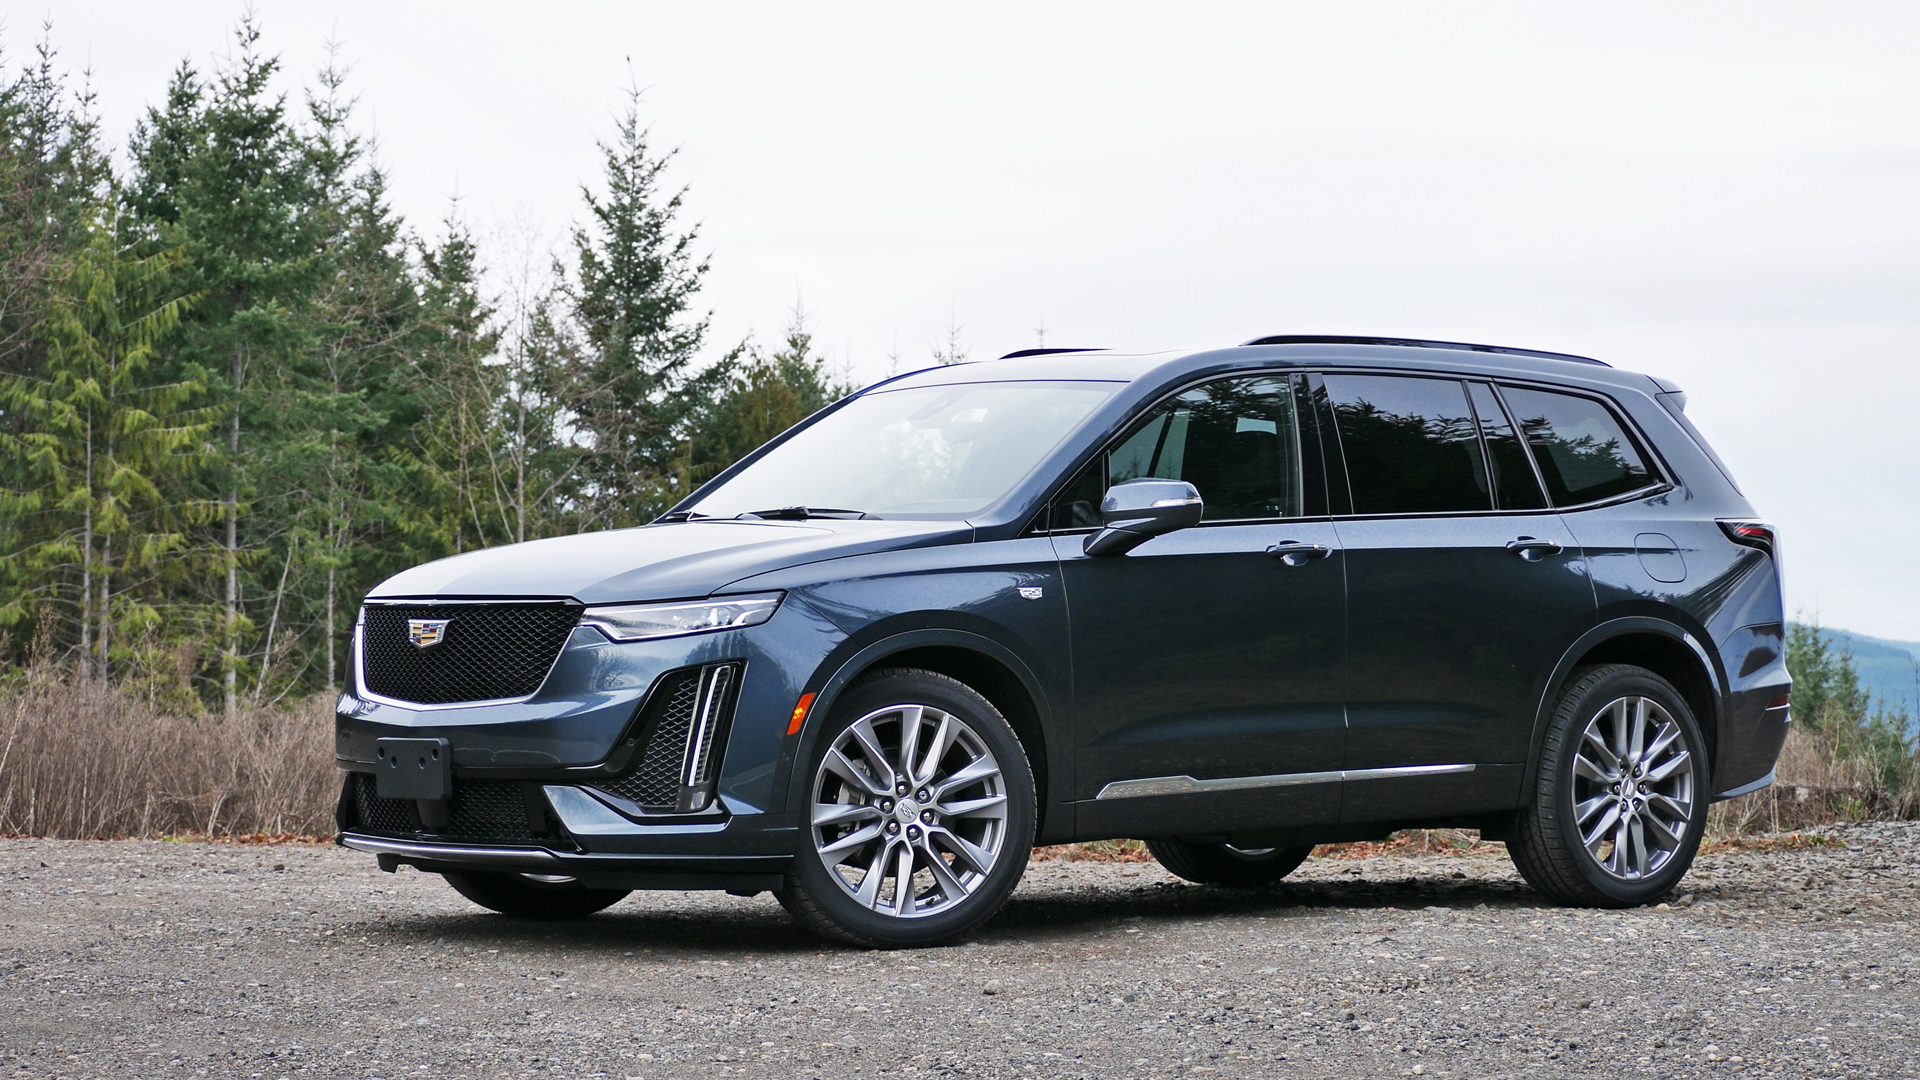 2020 cadillac xt6 reviews | price, specs, features and